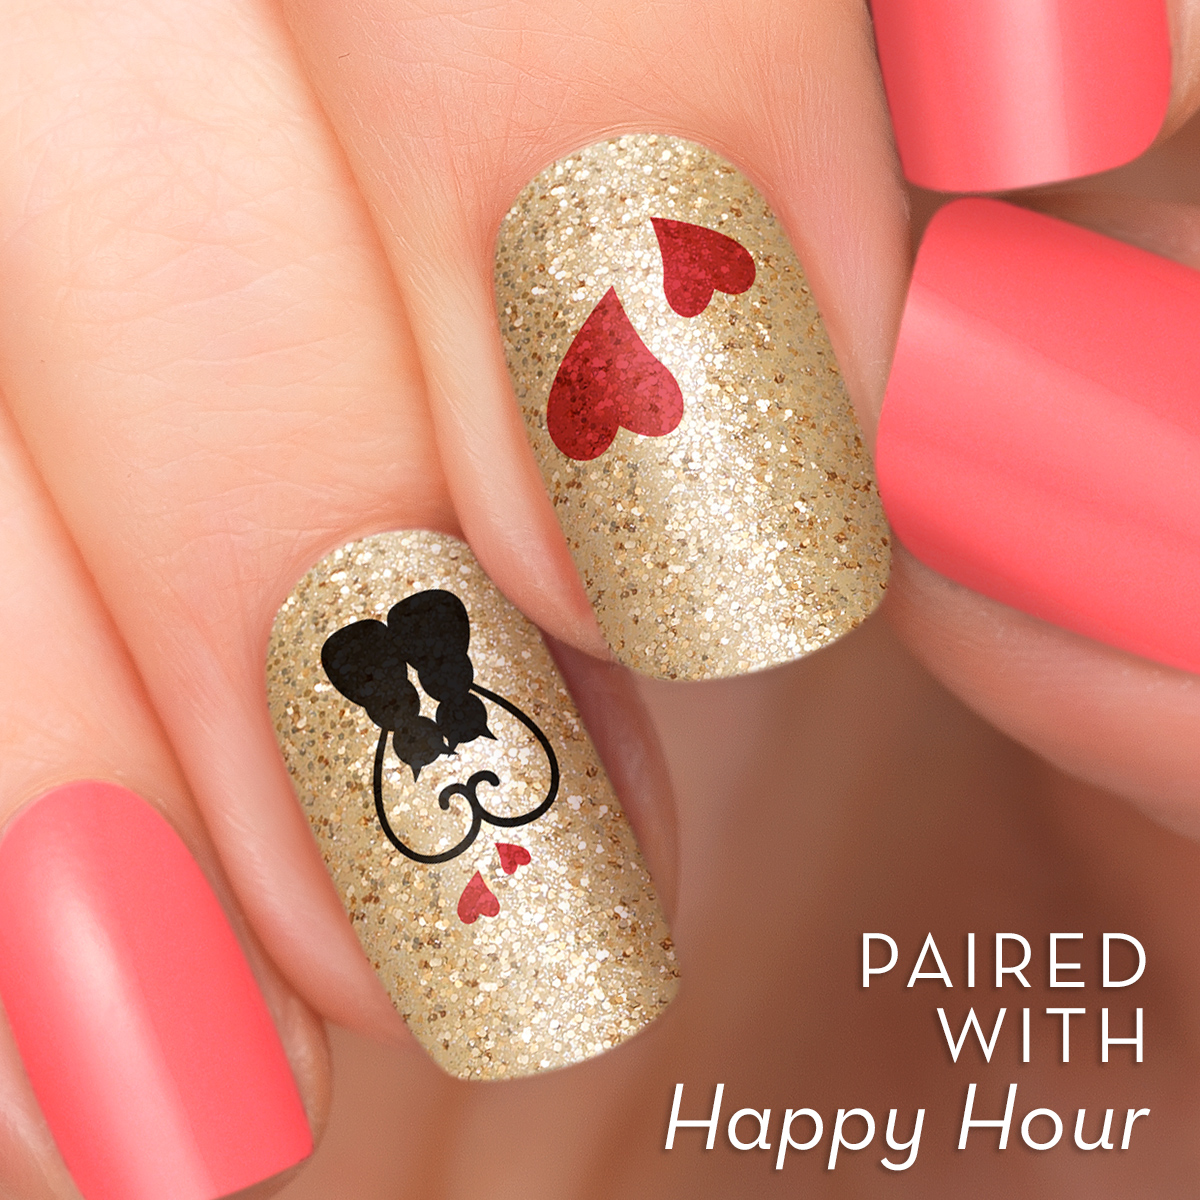 Incoco.com Incoco Nail Polish Strips, Sweet On You Accent Nail